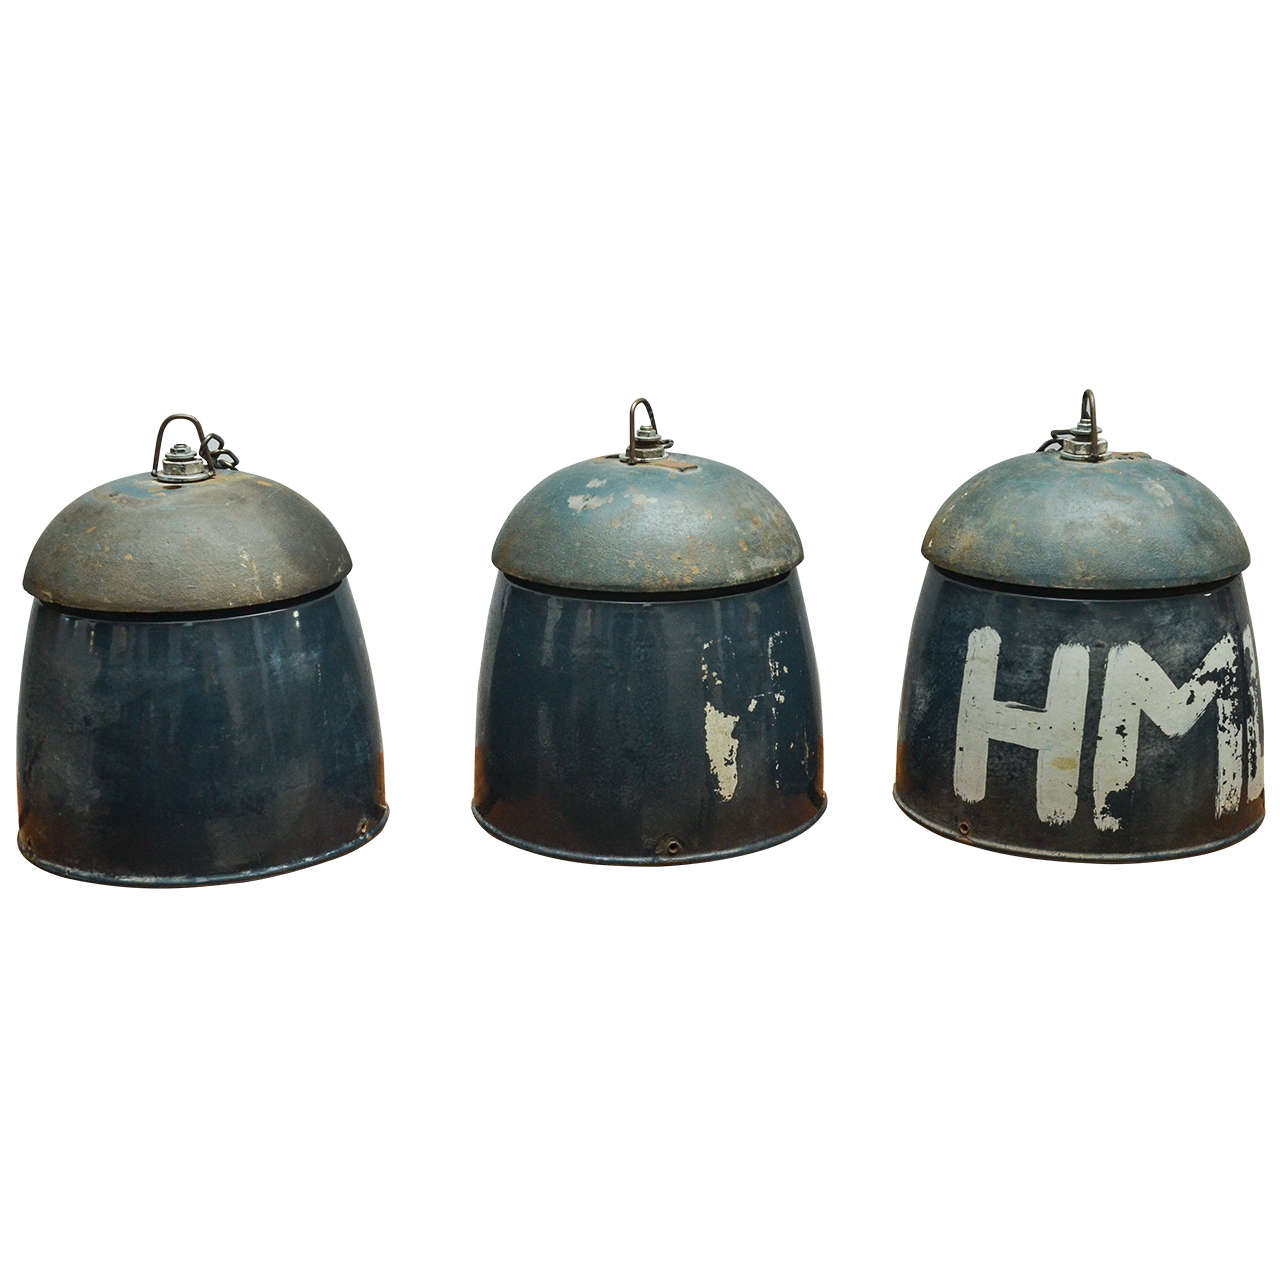 Industrial pendant lights at 1stdibs for Industrial bulb pendant